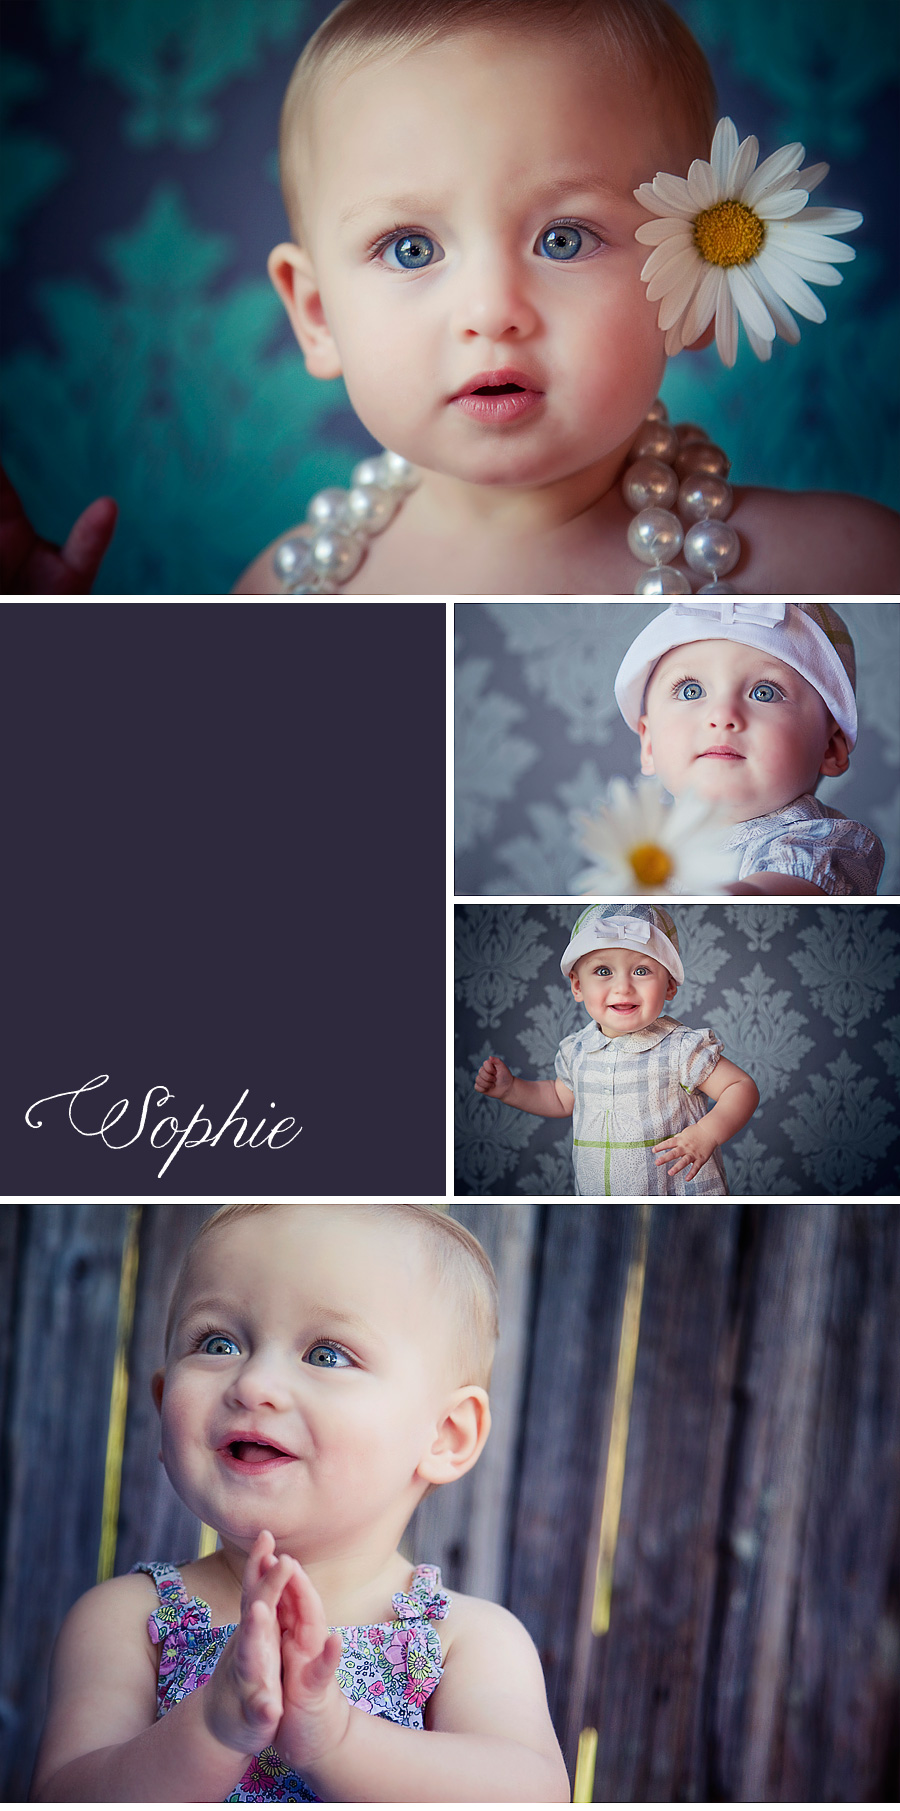 Laguna Beach, Orange County creative studio baby portrait photographs